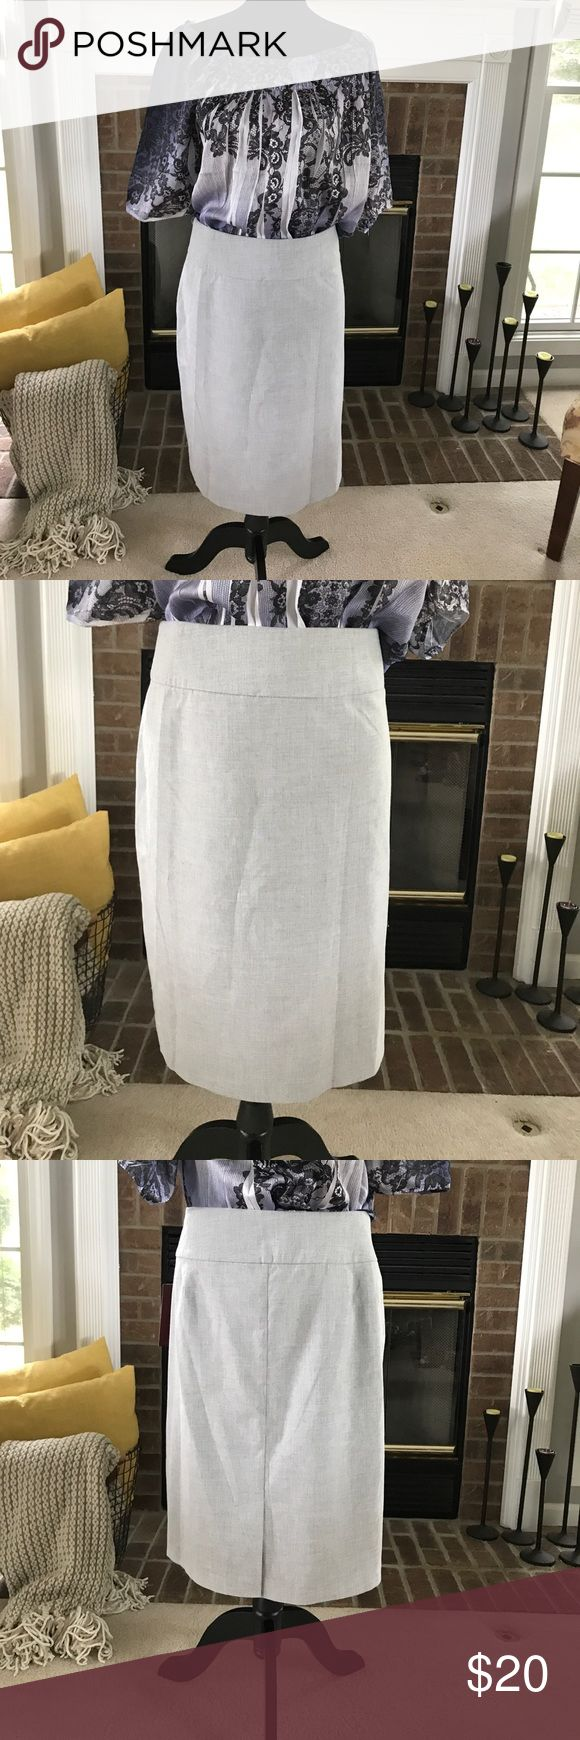 Gray pencil skirt NWT. Gray pencil skirt size 18 zips on side small slit in back Skirts Pencil